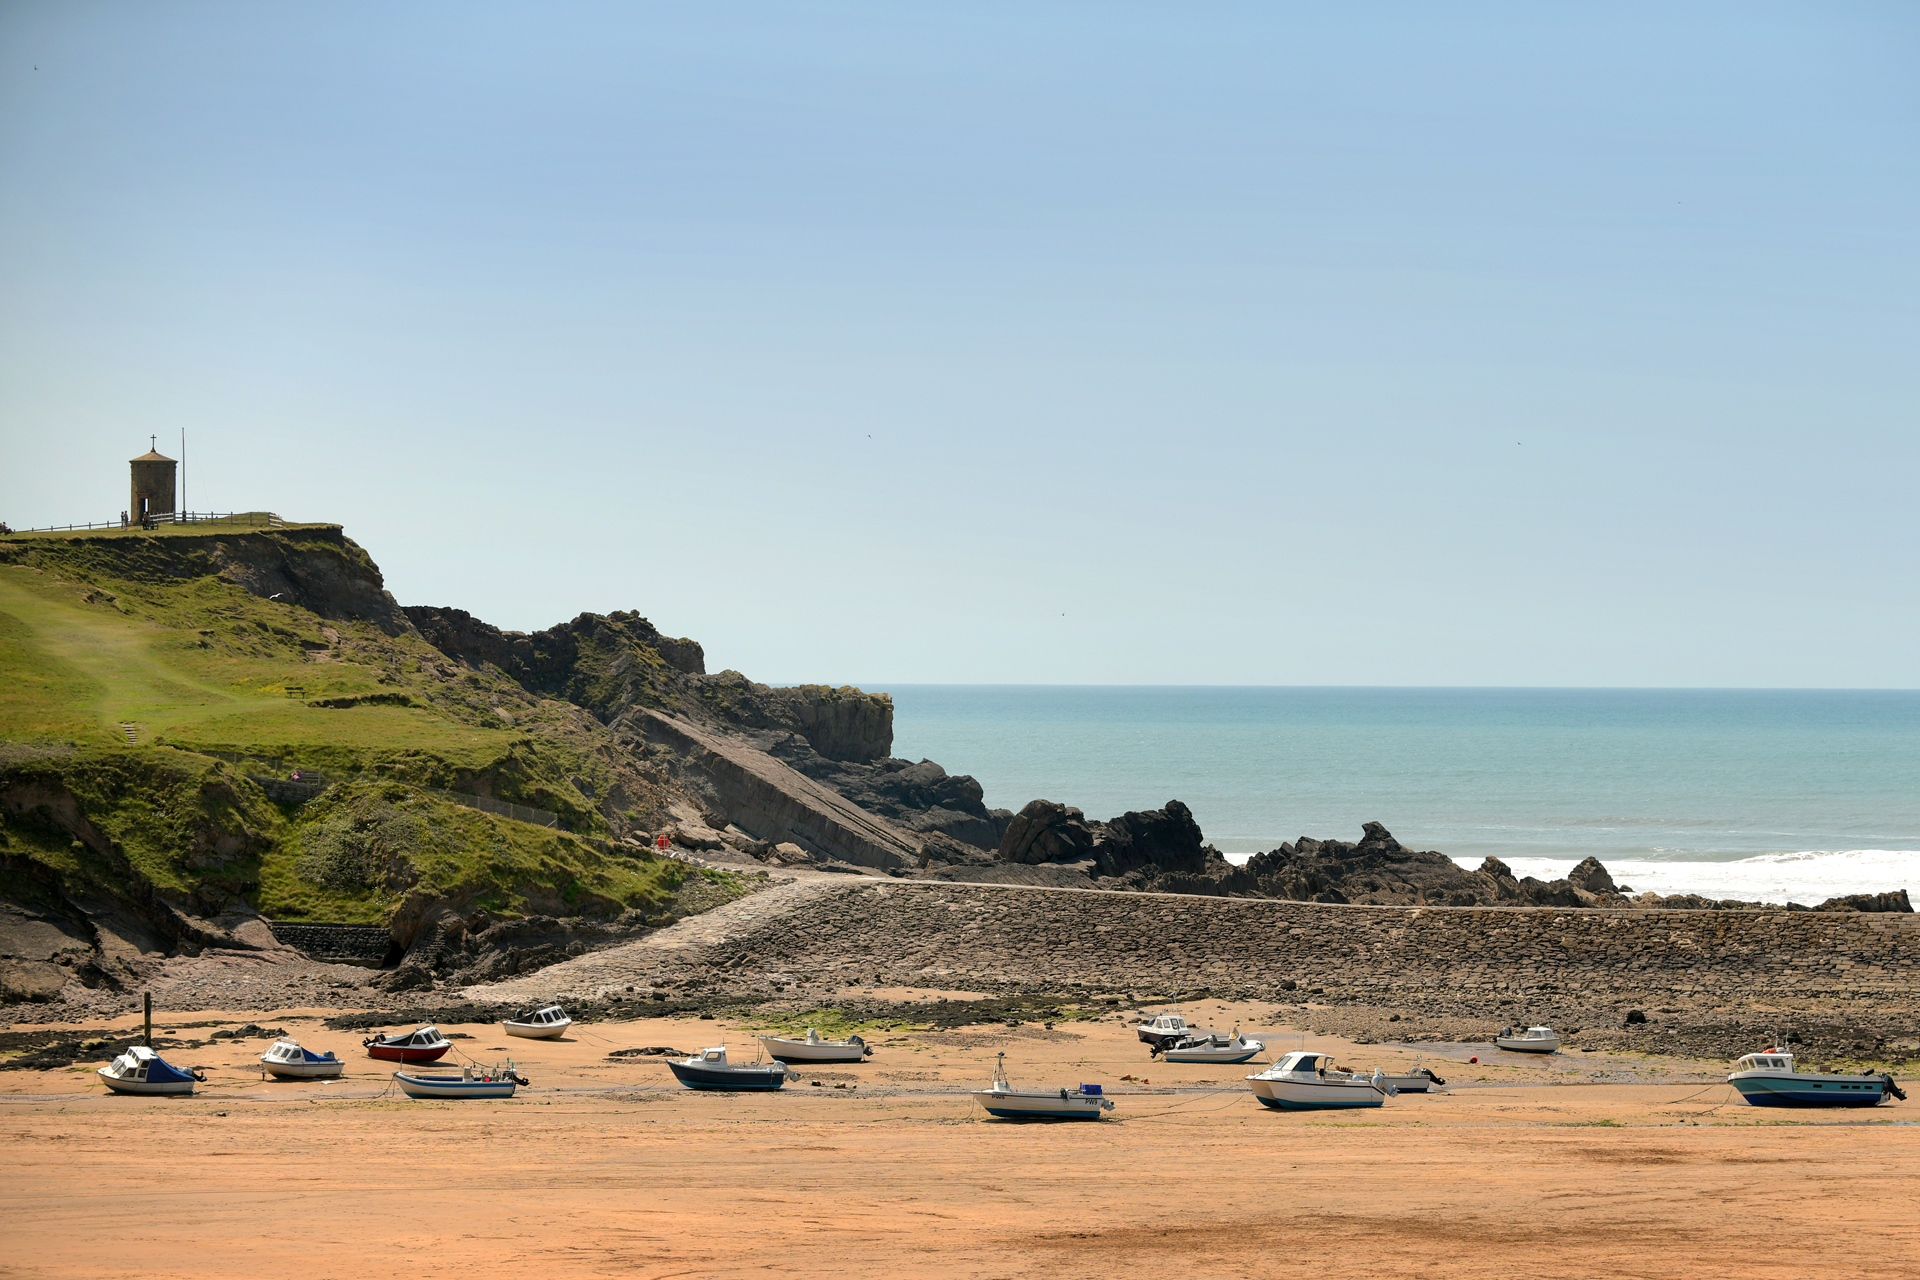 Boats at low tide on Summerleaze beach, Bude, north Cornwall